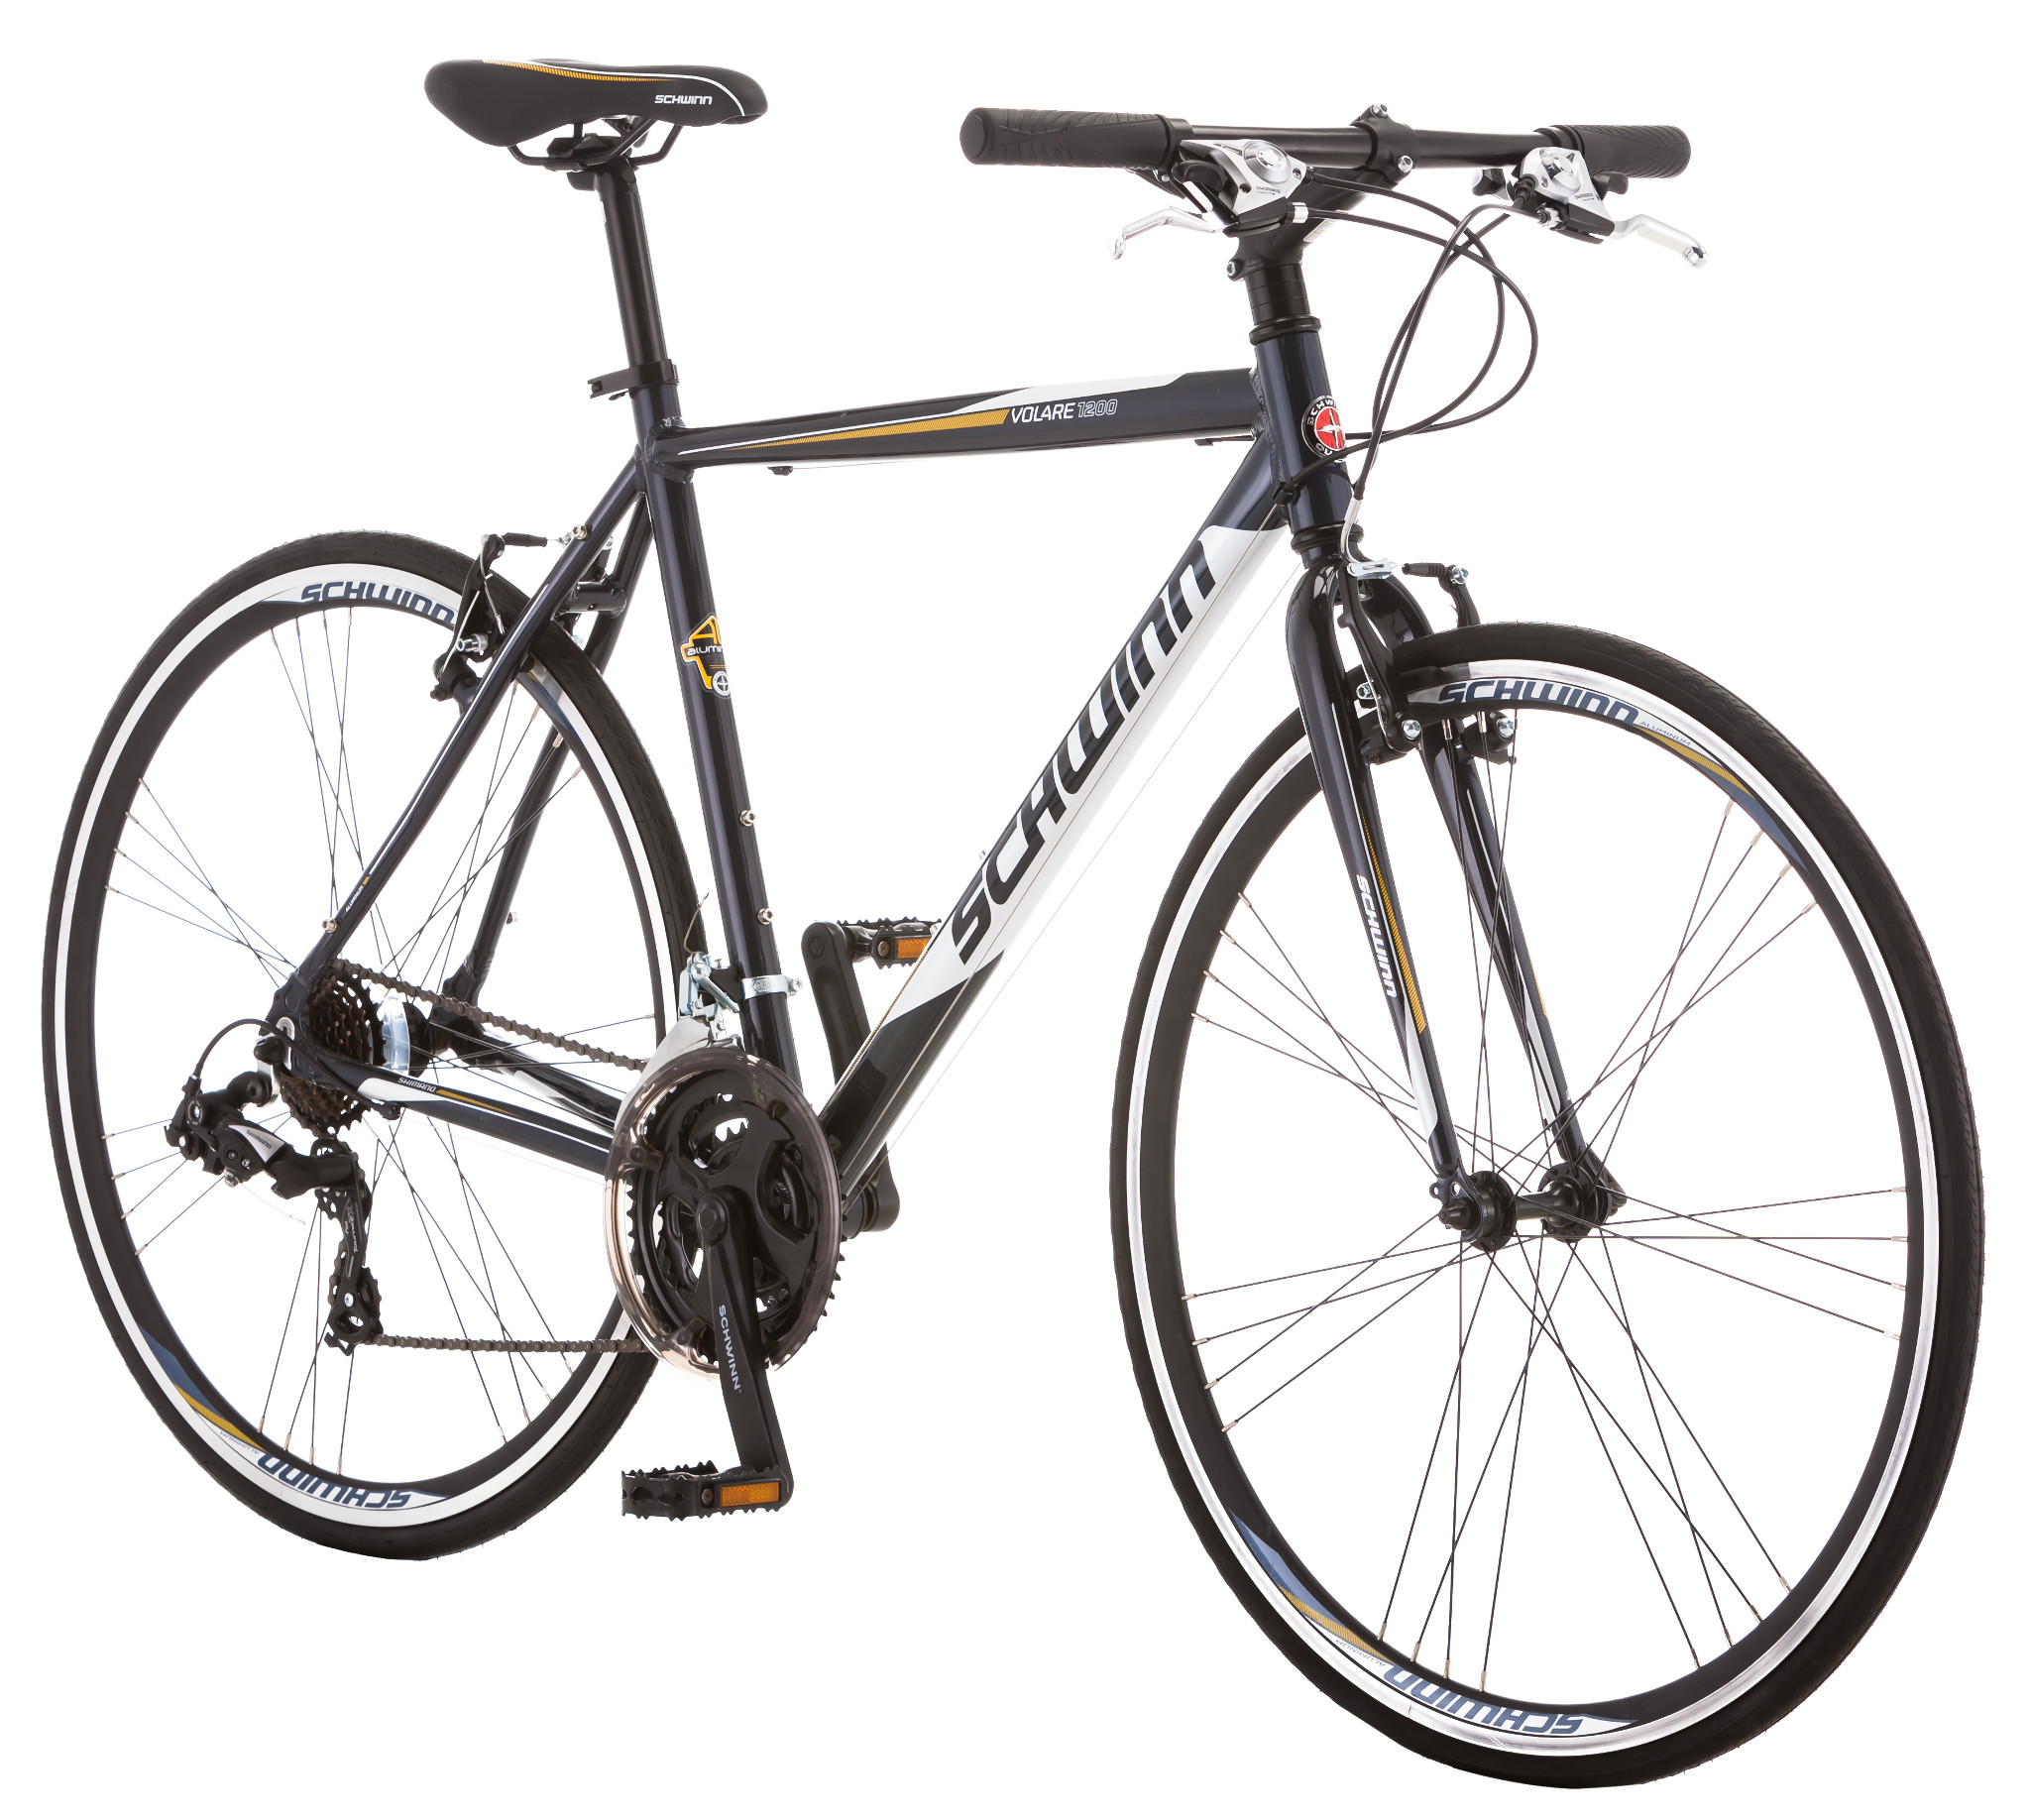 Schwinn Volare 1200 21 Speed Road Bike Gray